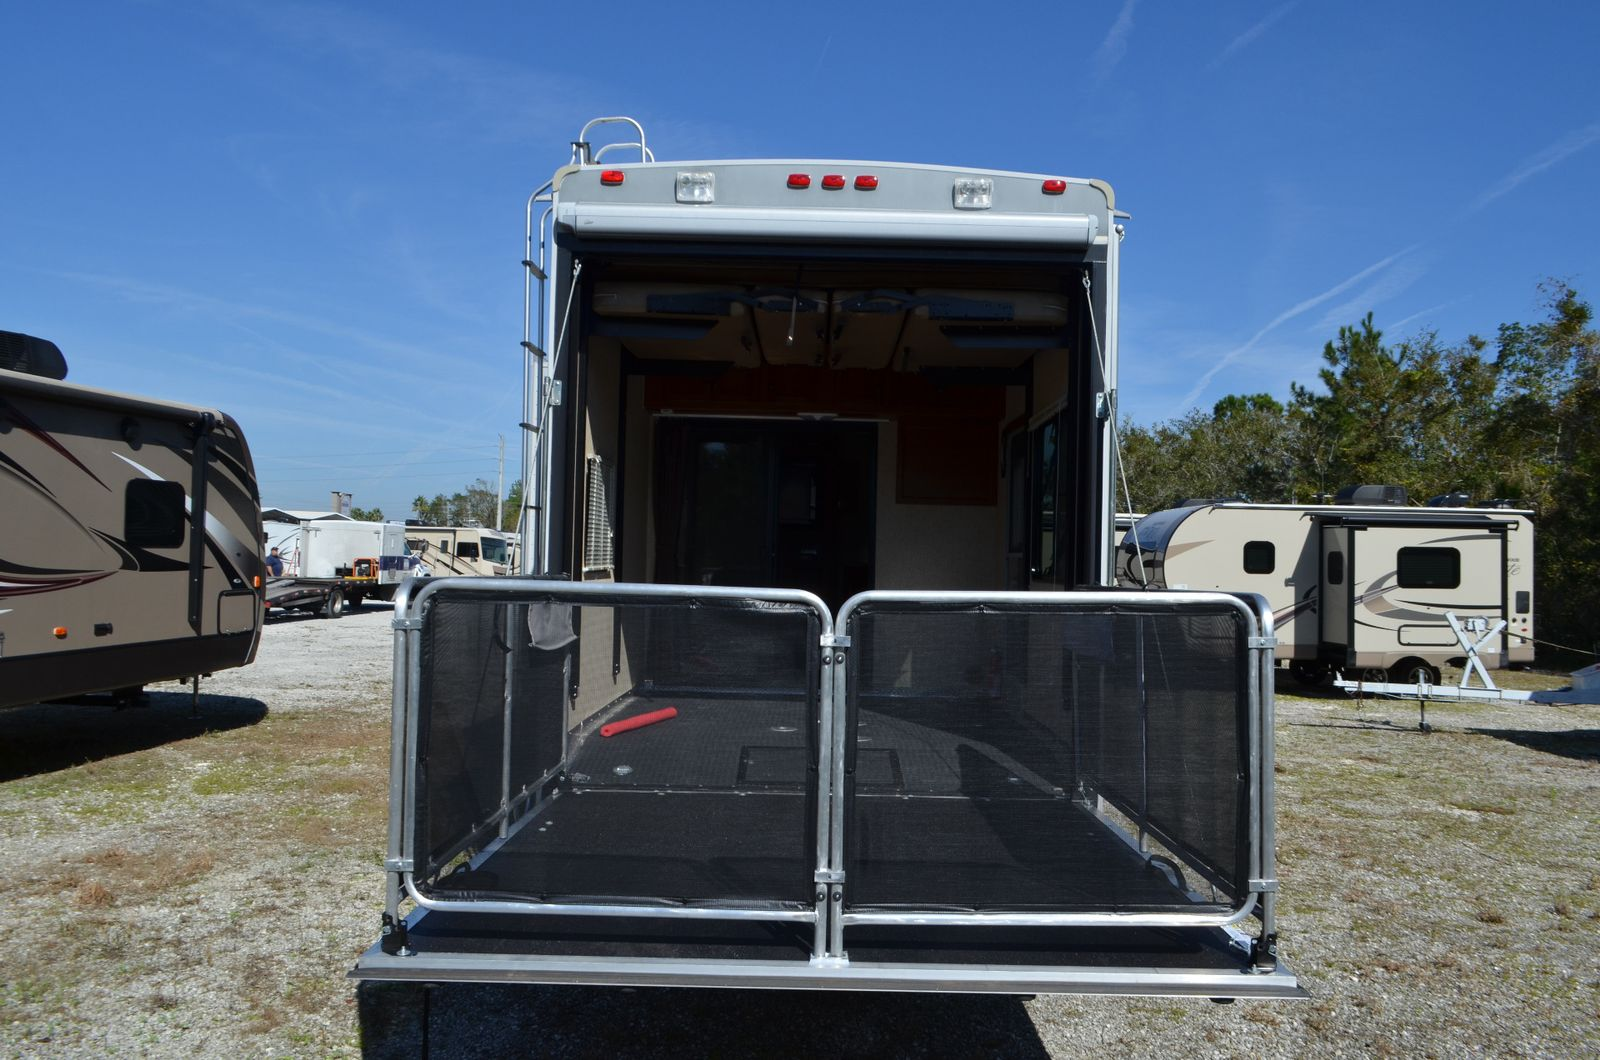 used toy hauler 2013 heartland cyclone 3010 fifth wheel rv for sale w rear patio. Black Bedroom Furniture Sets. Home Design Ideas